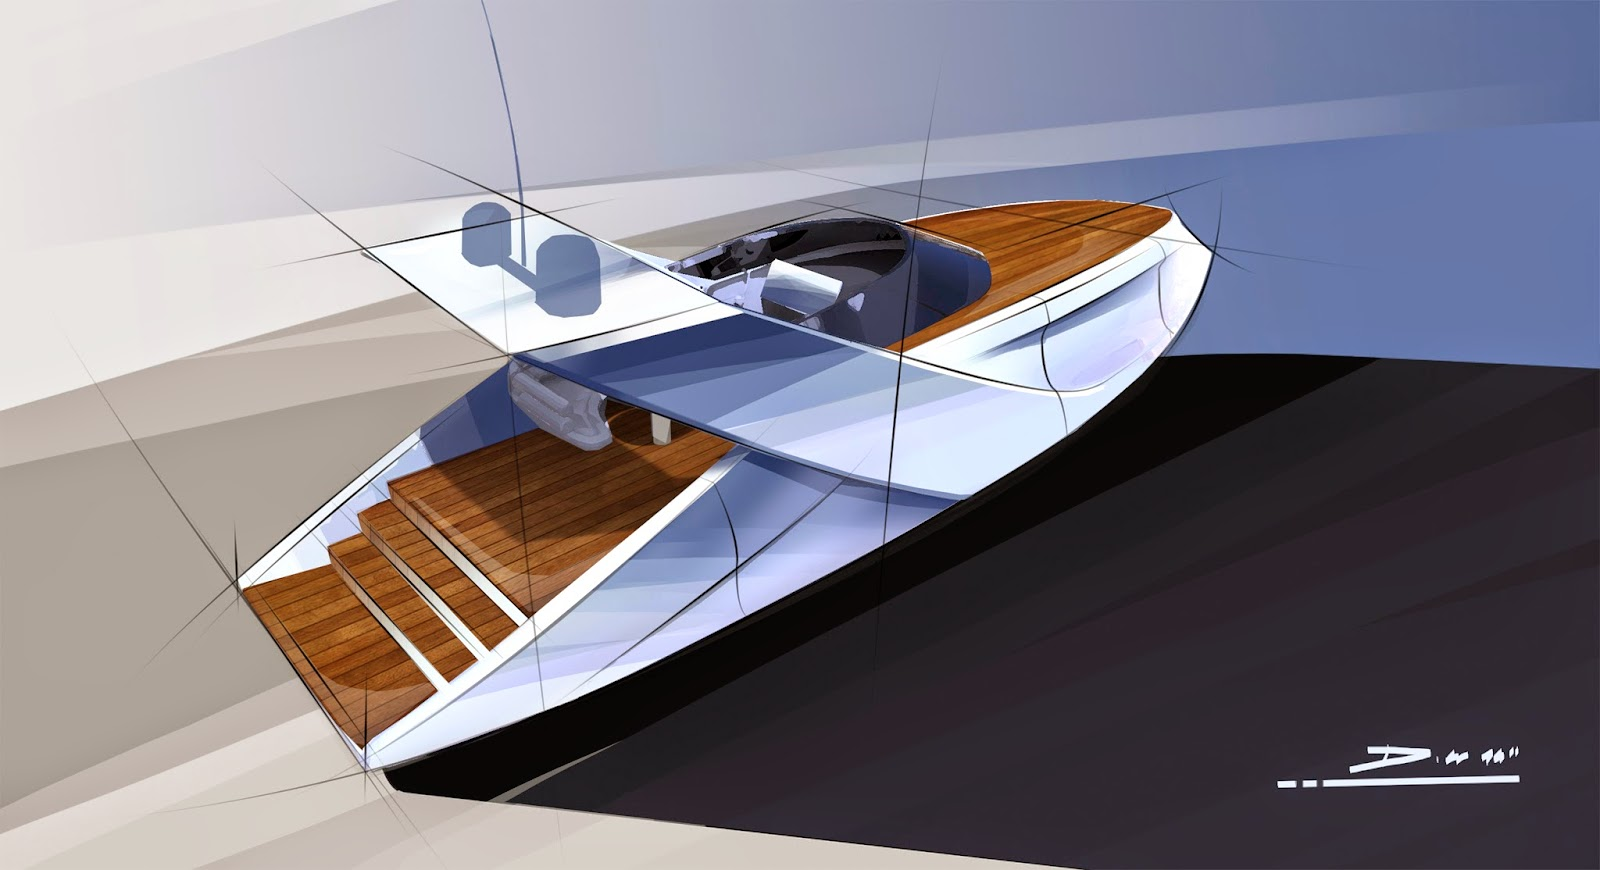 Car design sketches and drawings january 2015 for Mercedes benz yacht cost